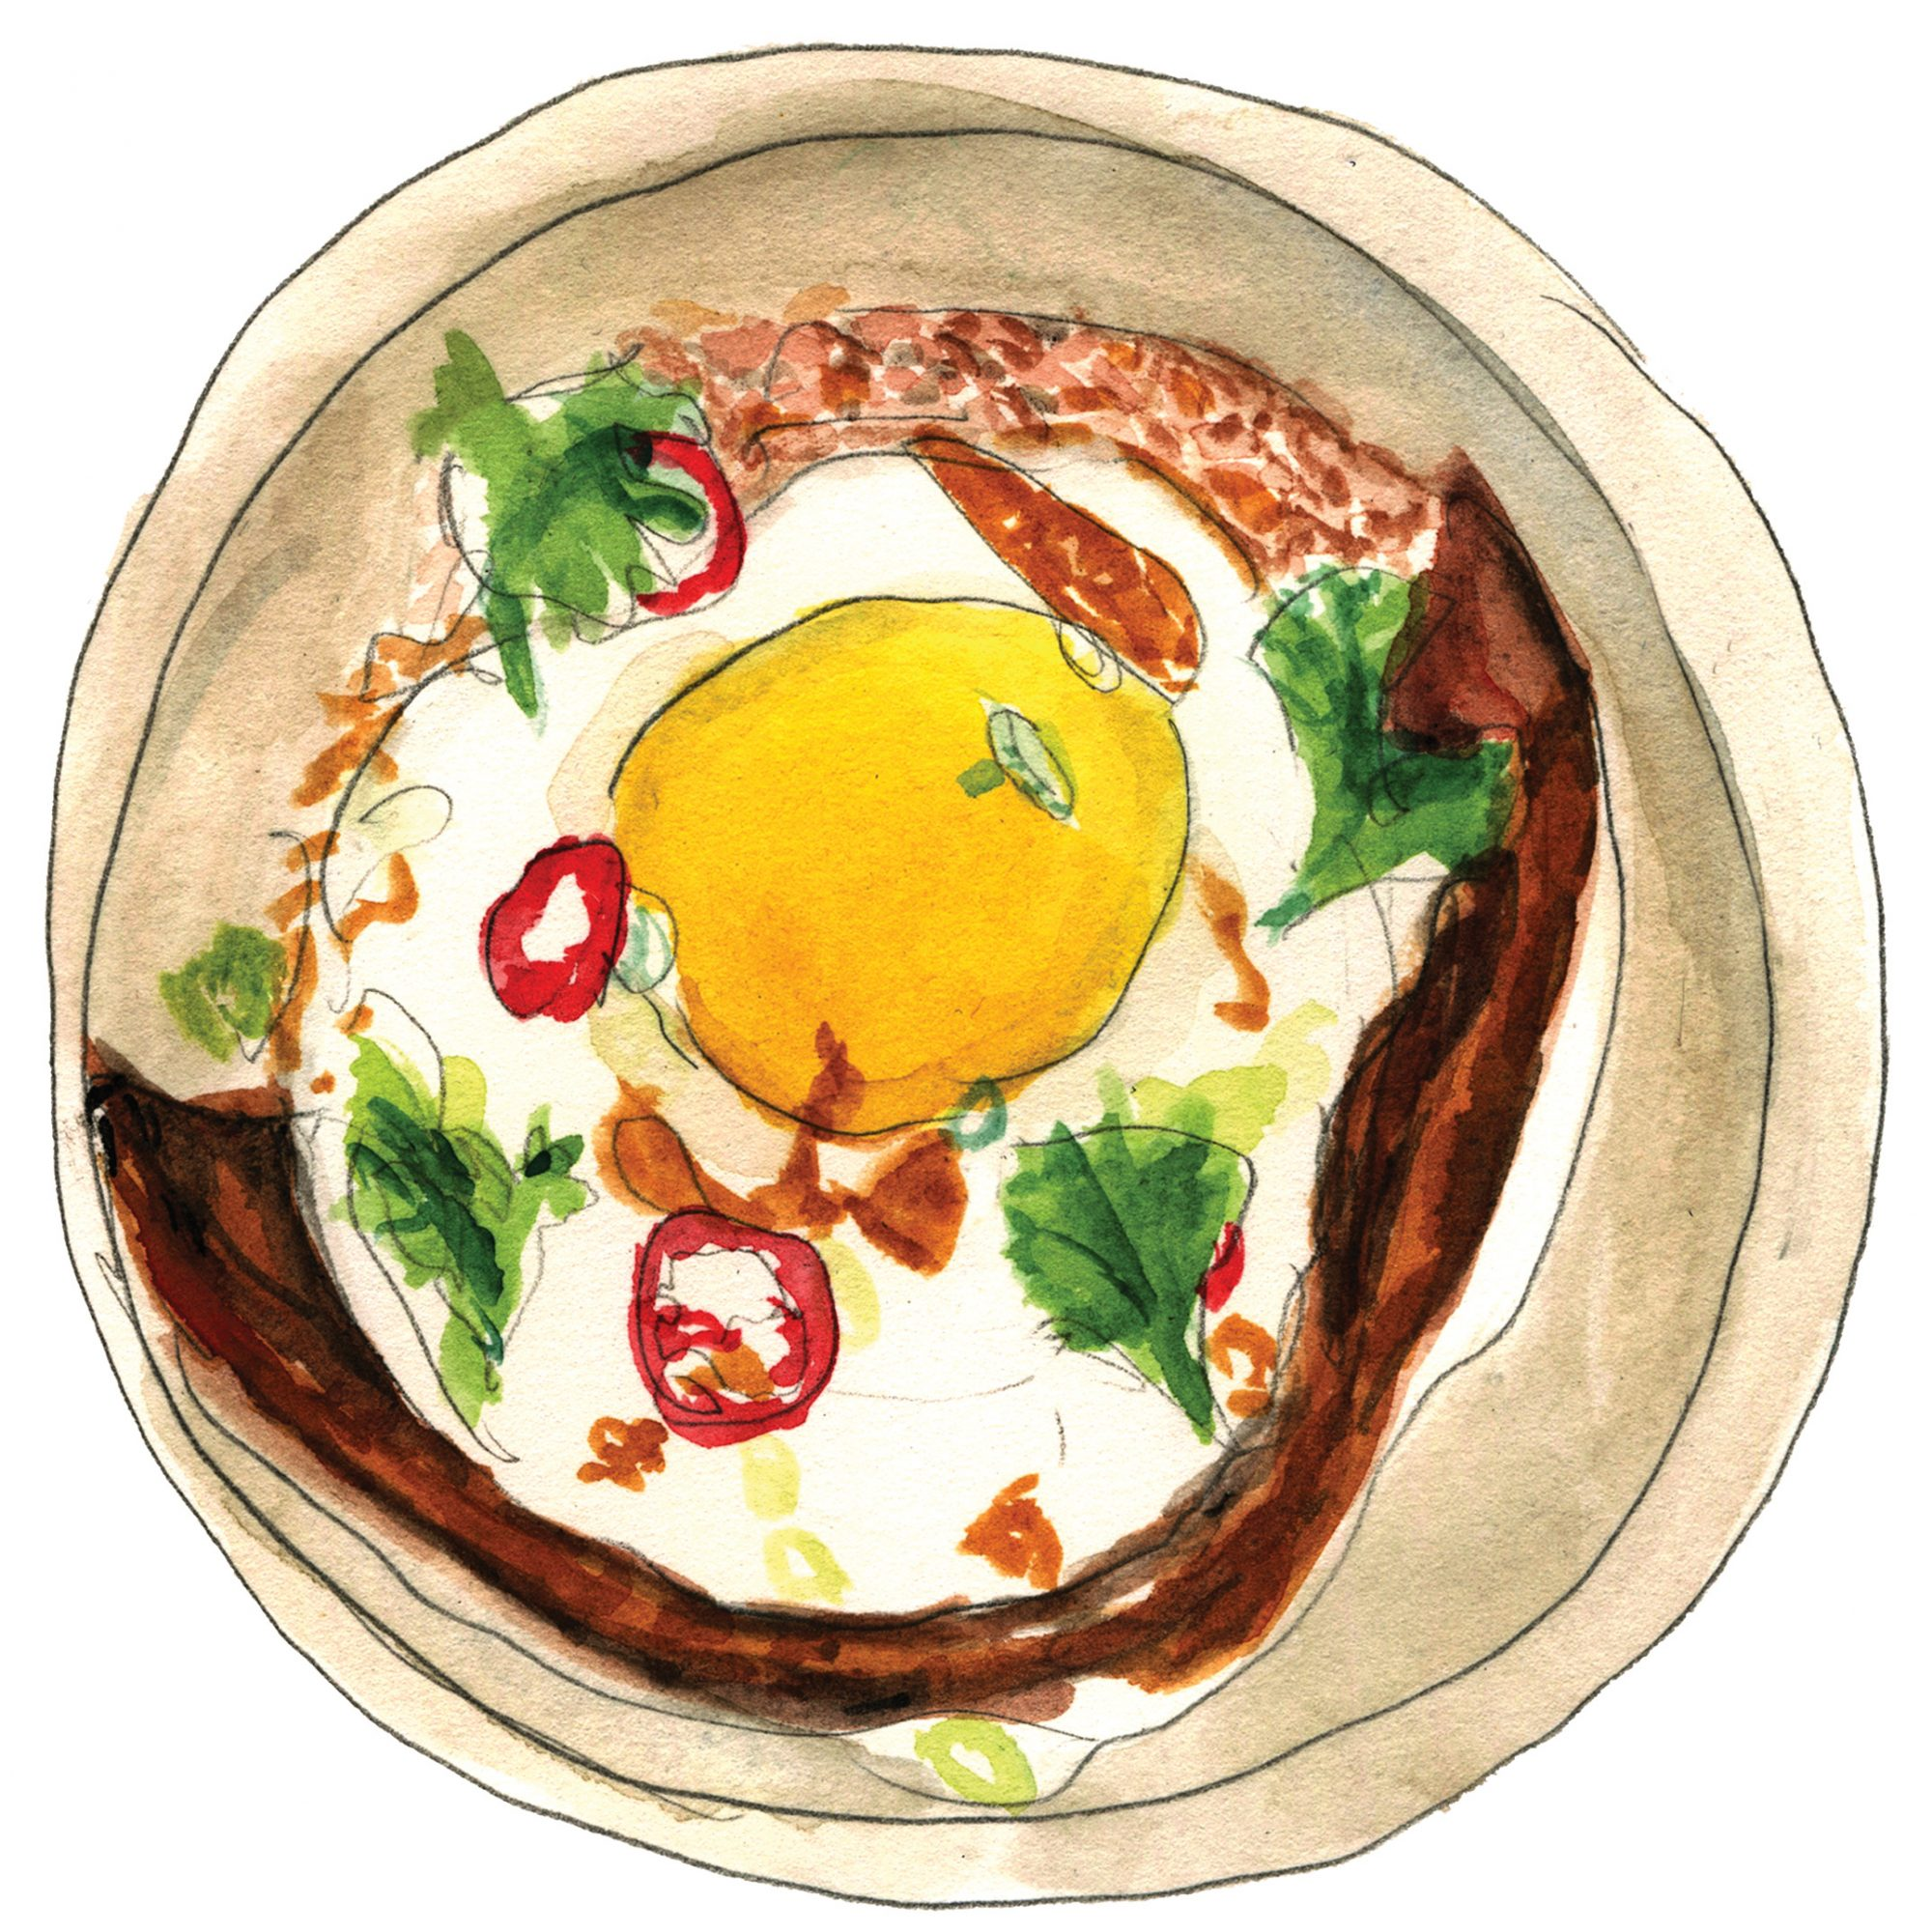 illustration of plated food from wayan